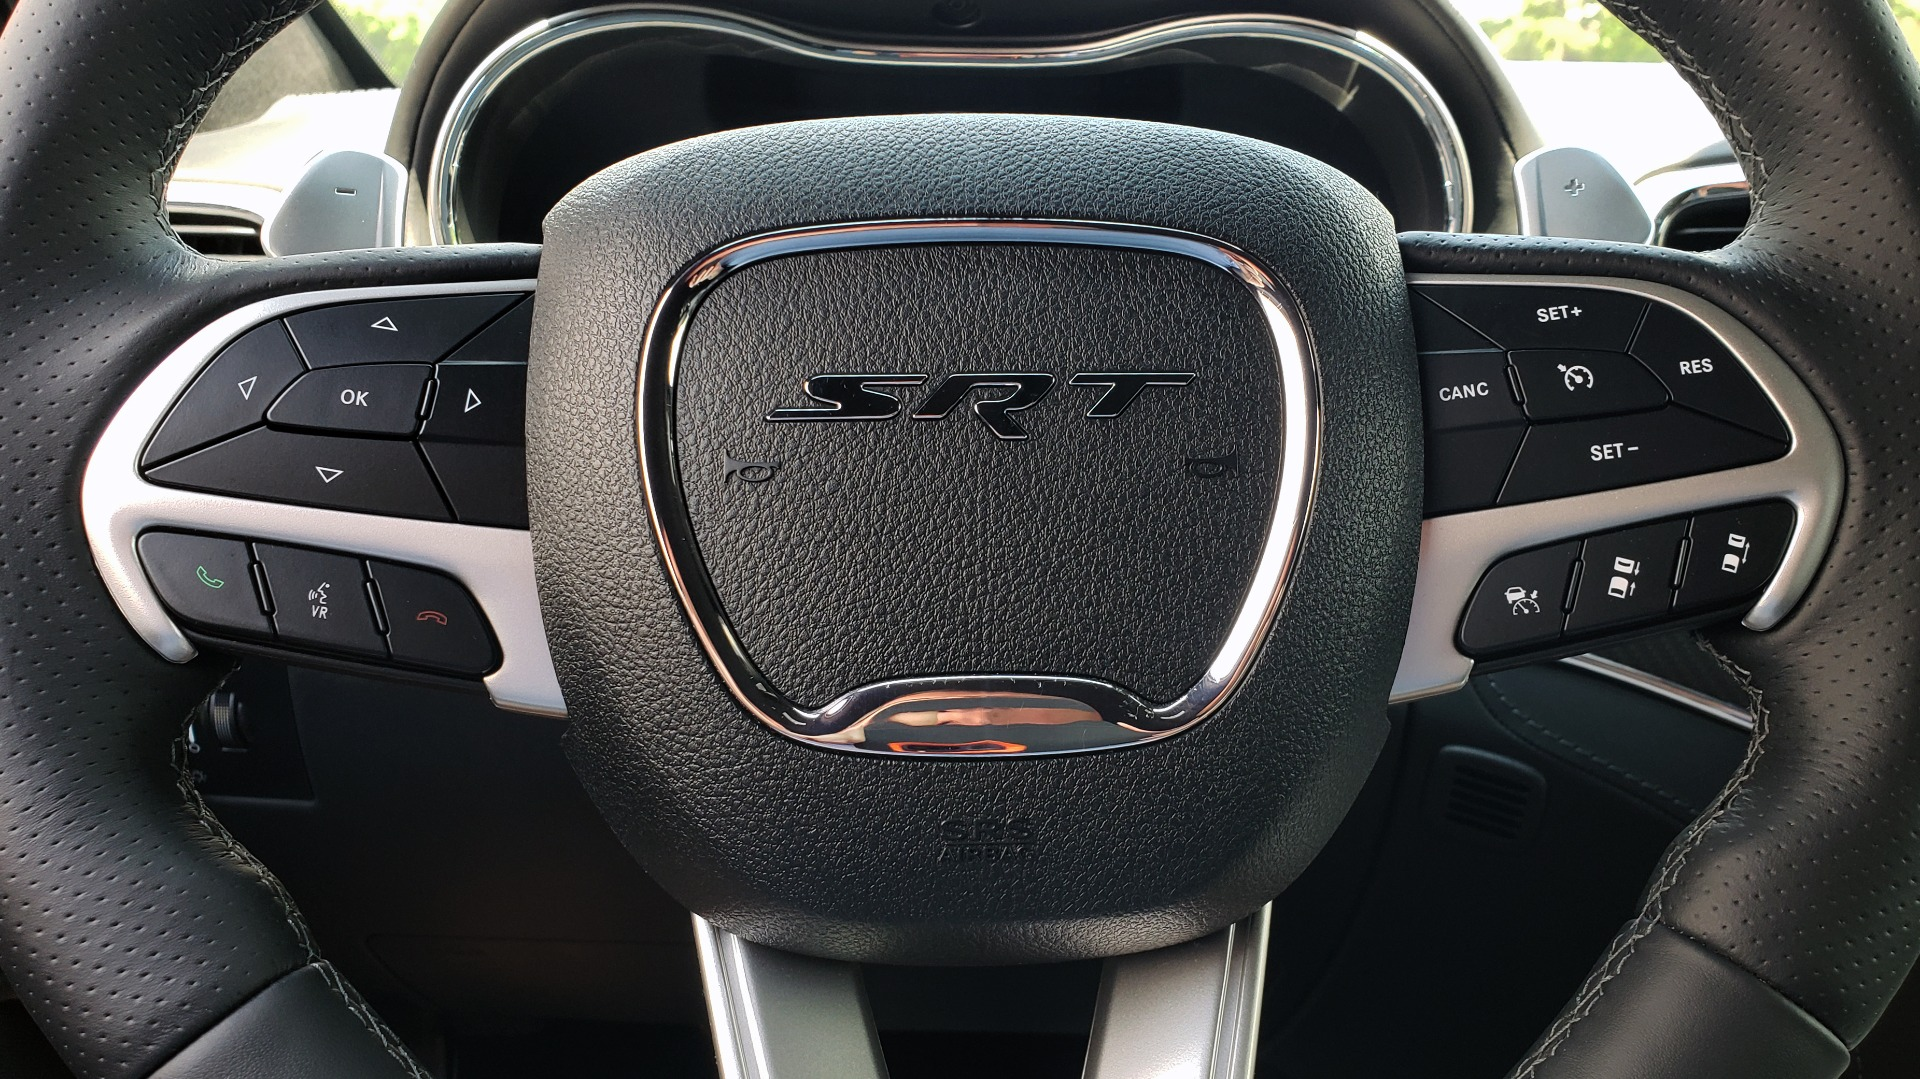 Used 2018 Jeep GRAND CHEROKEE SRT 4X4 / 6.4L HEMI (475HP) / NAV / SUNROOF / H/K SND / REARVIEW for sale Sold at Formula Imports in Charlotte NC 28227 51